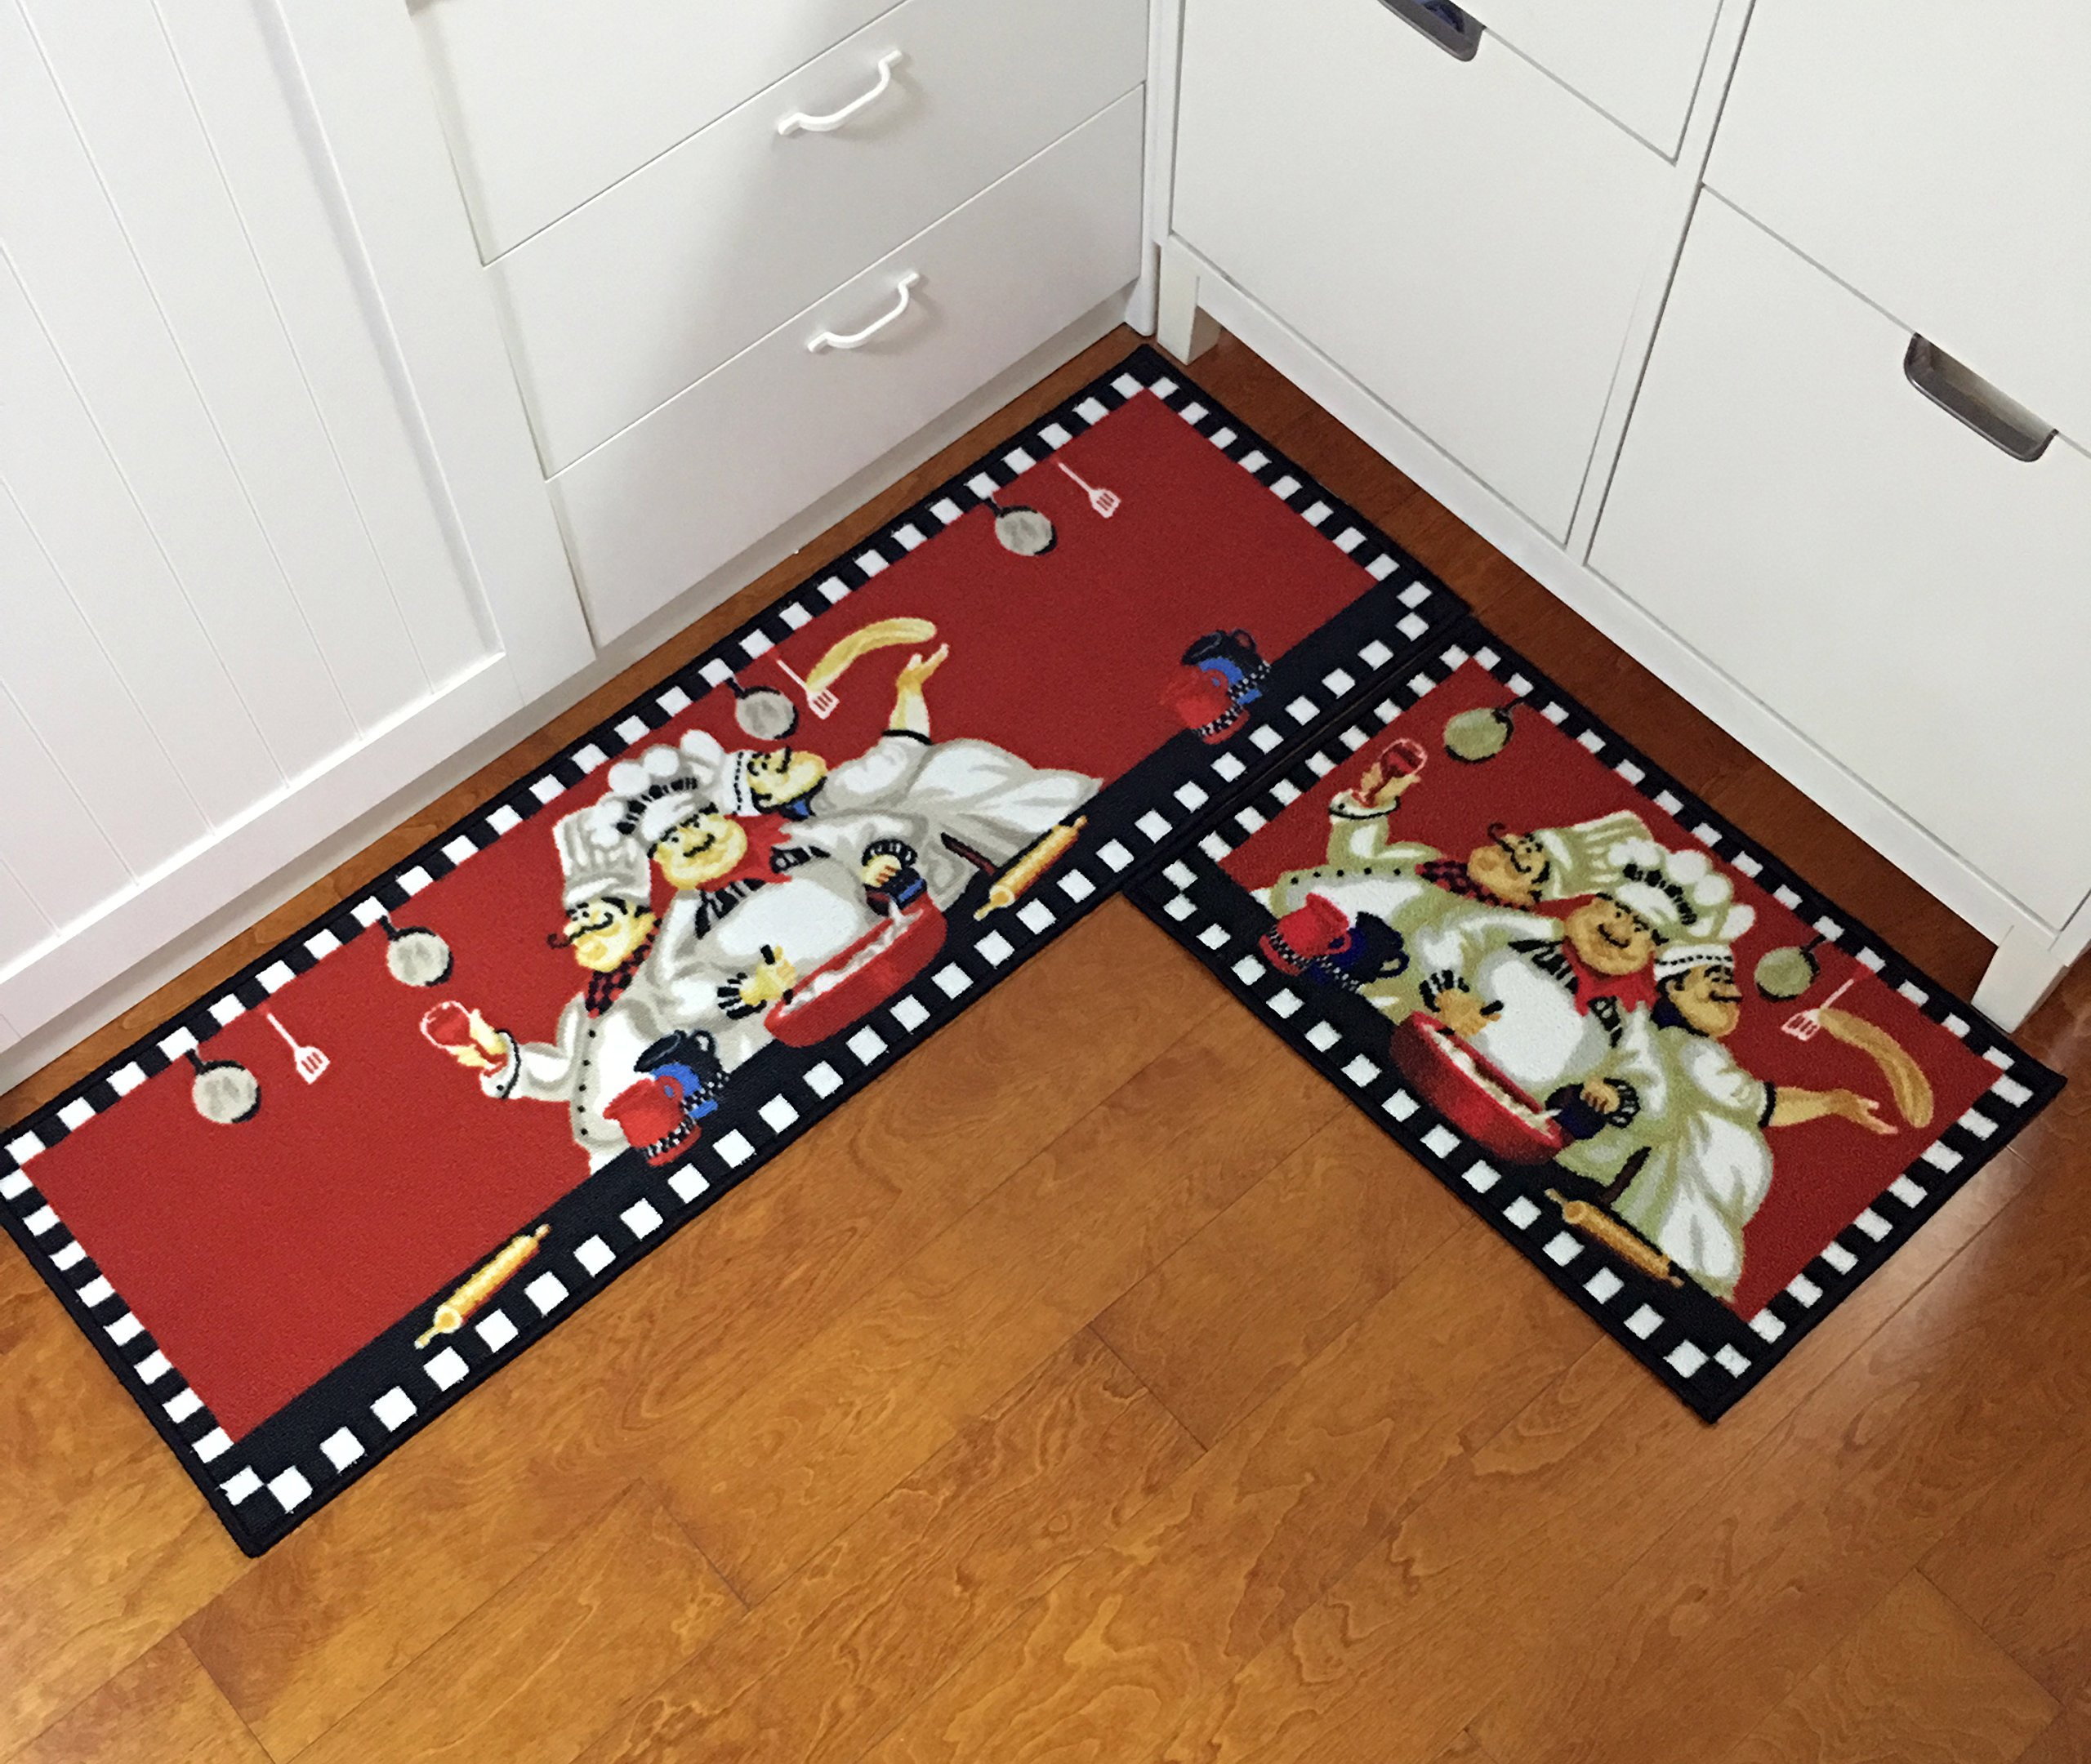 EUCH Non-slip Rubber Backing Carpet Kitchen Mat Doormat Runner Bathroom Rug 2 Piece Sets,15''x47''+15''x23'' (three chef) by EUCH (Image #1)